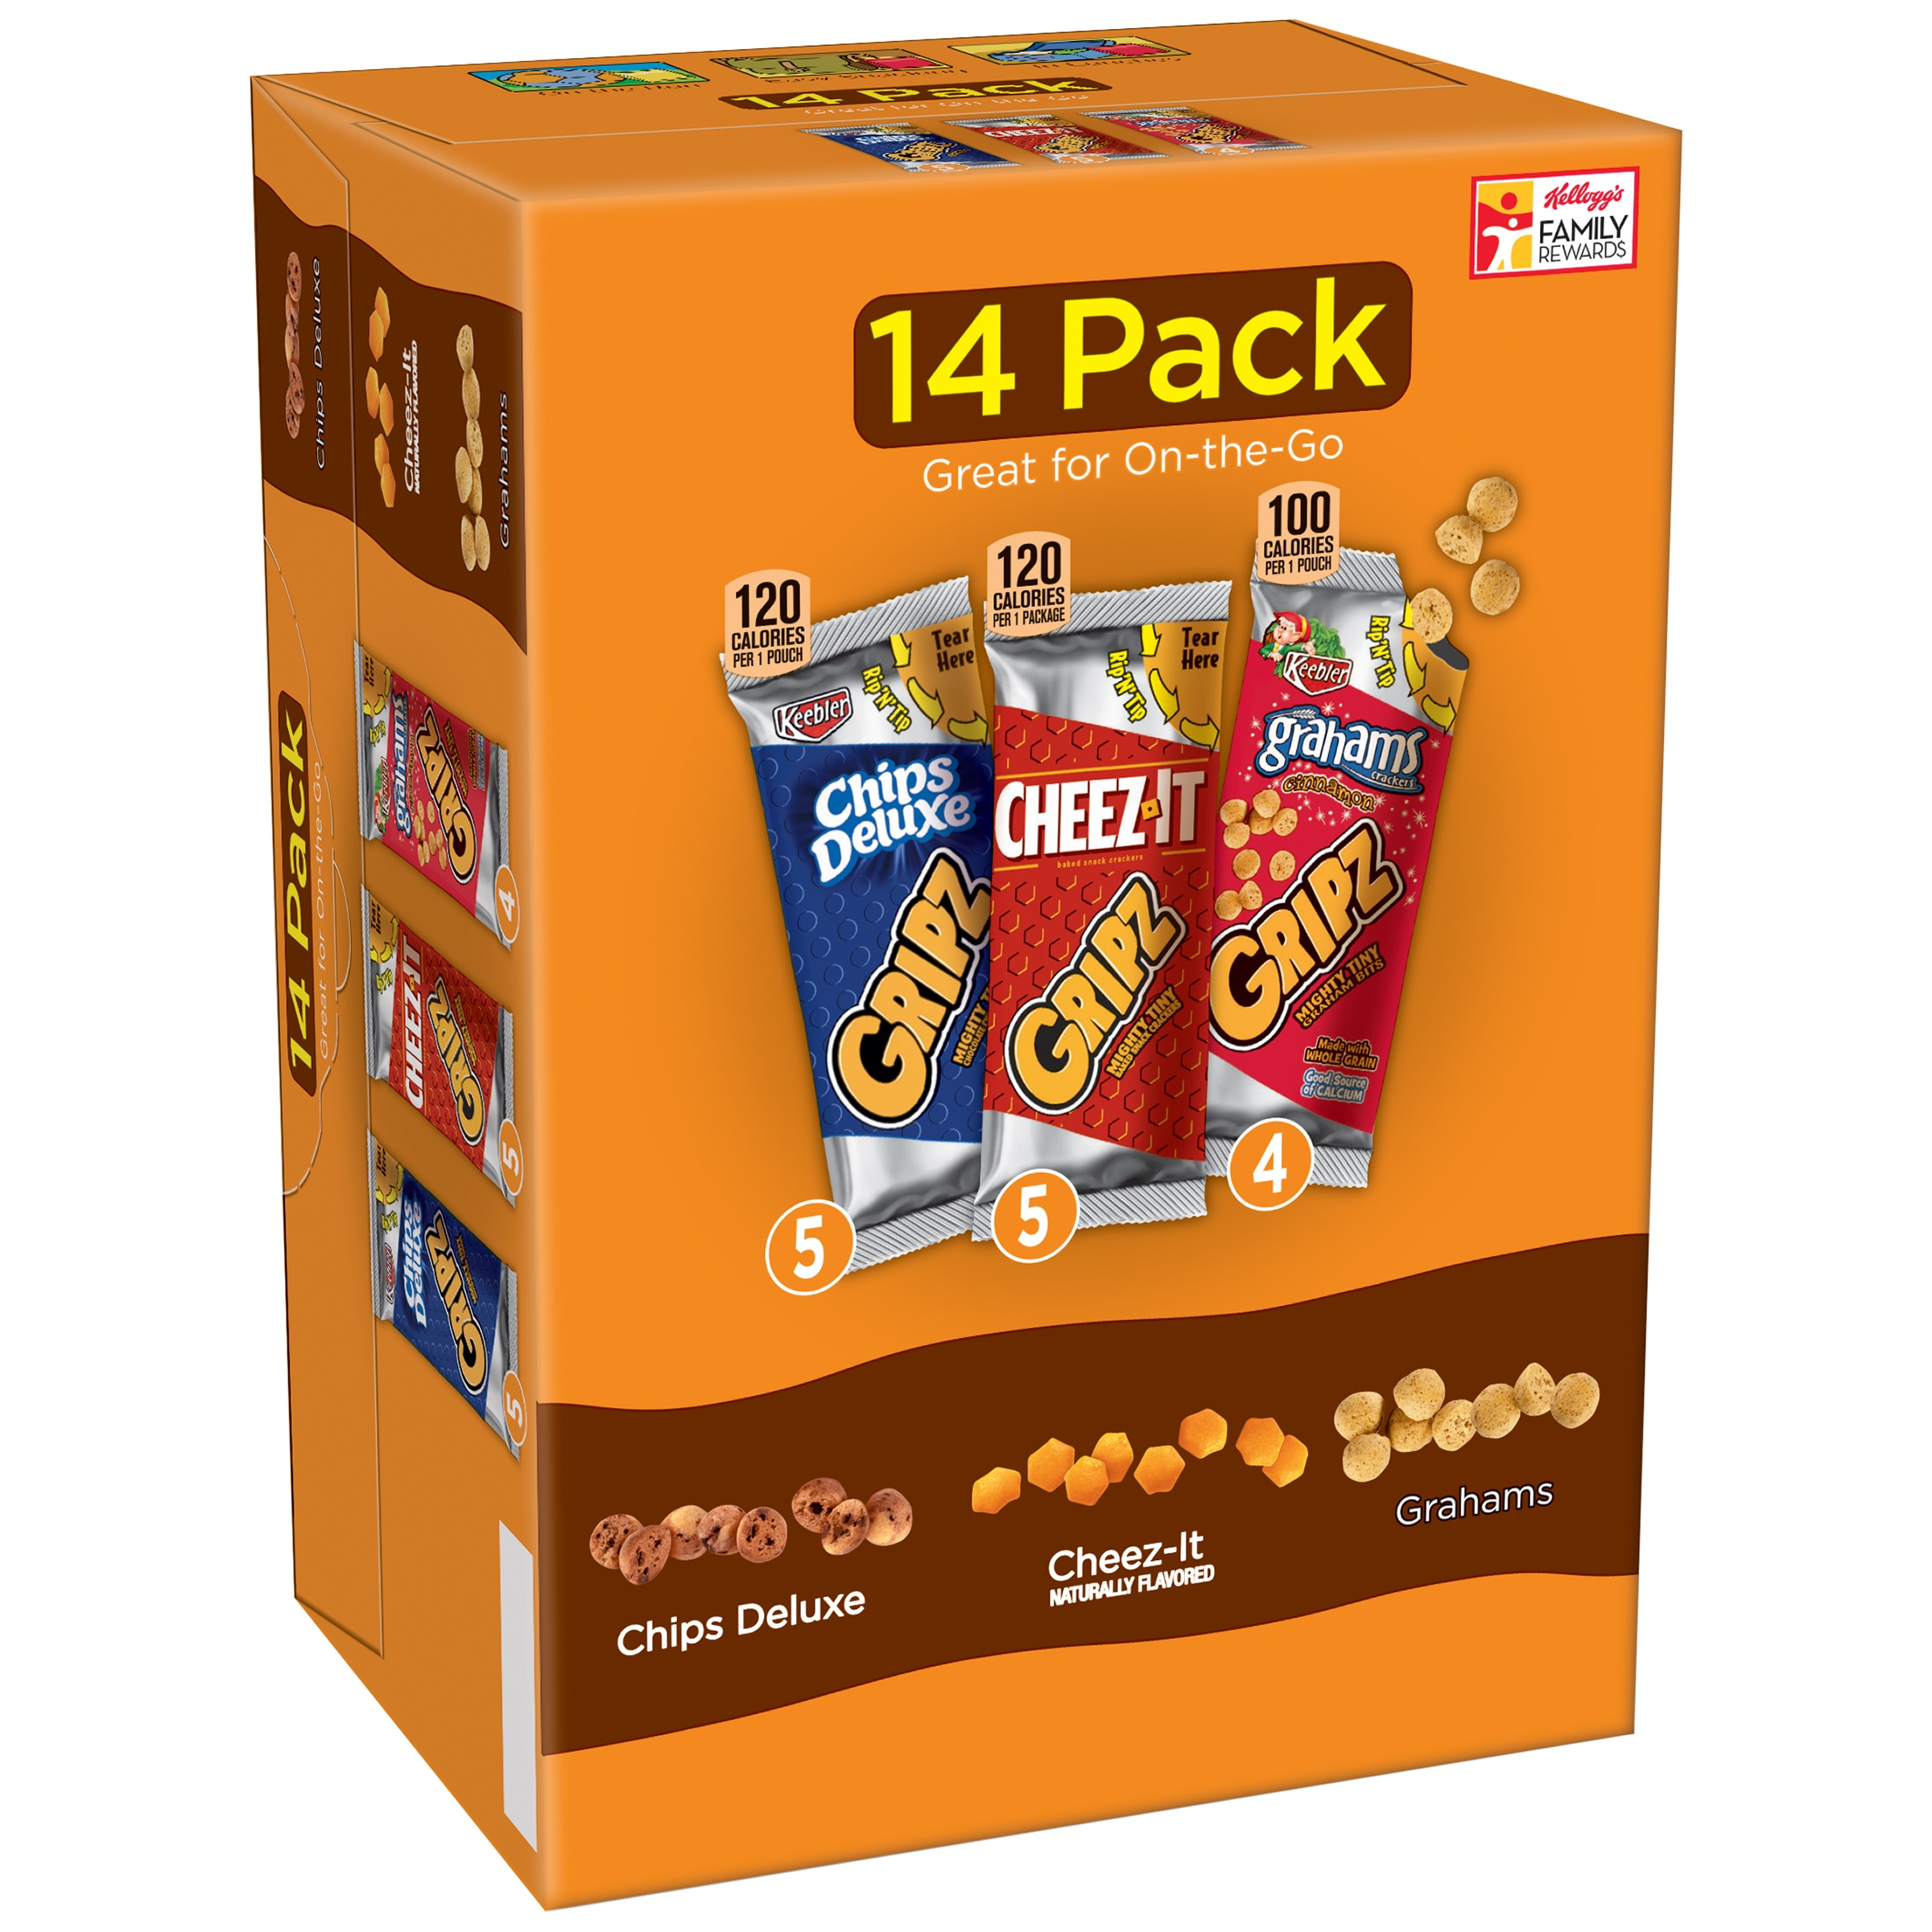 Kellogg's Gripz Chips Deluxe/Cheez-It/Grahams Snack Variety Pack 14-0.9 oz. Bags